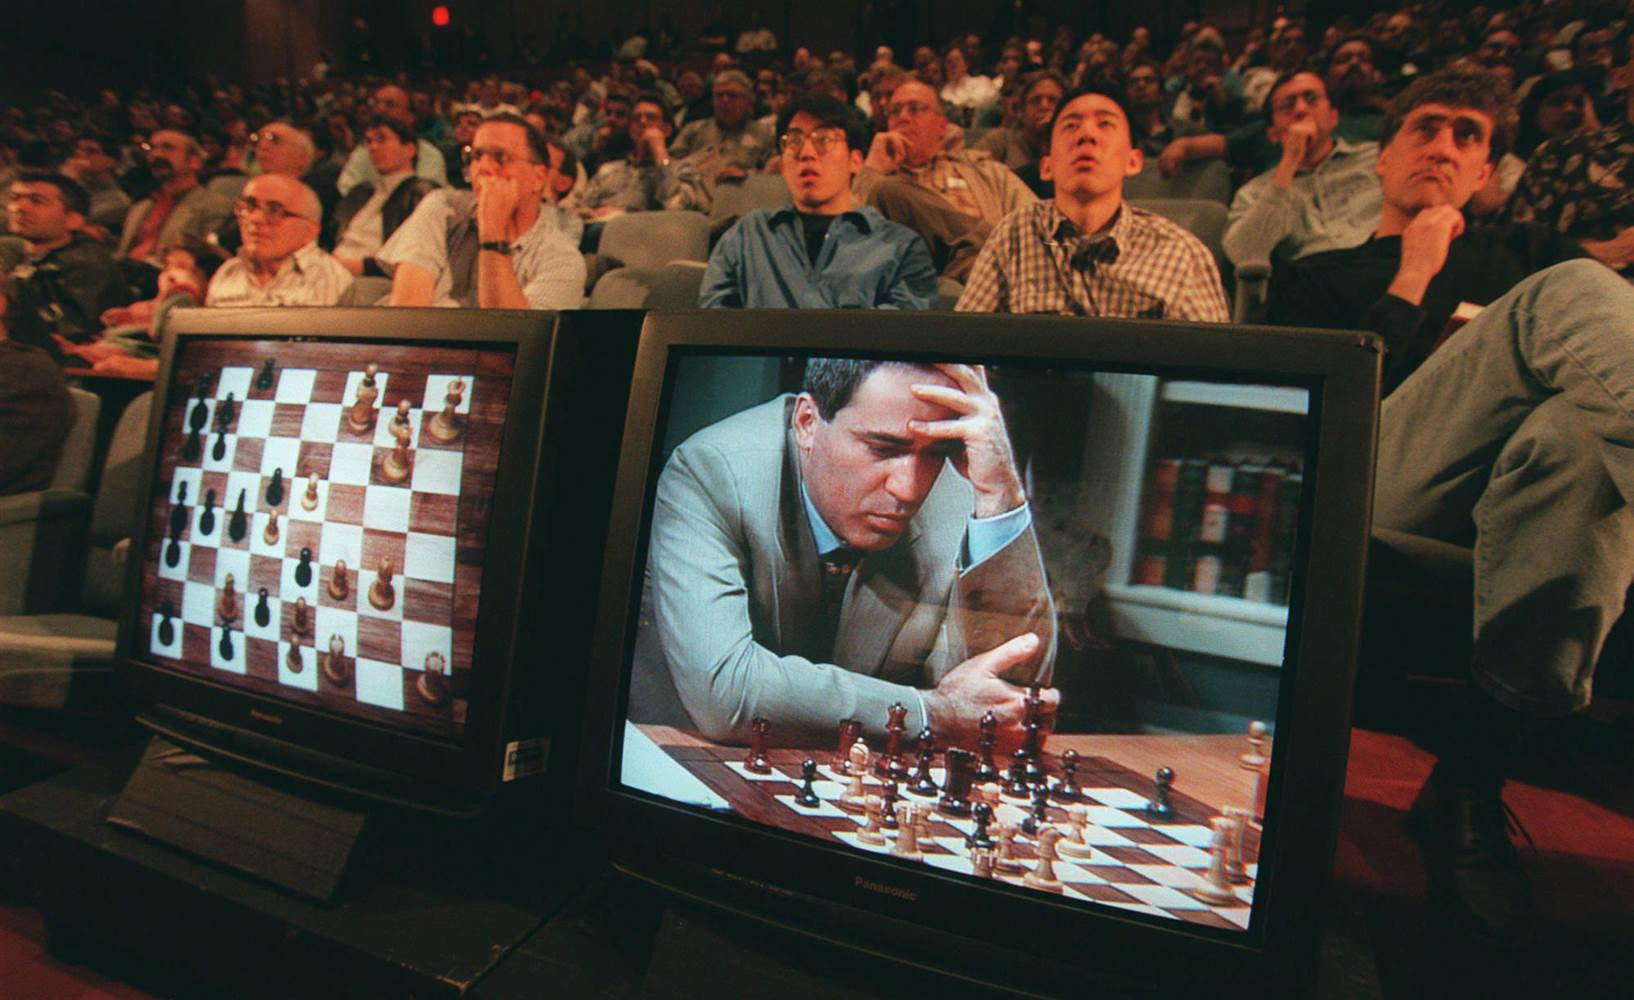 Garry Kasparov Chess Checkmate Diagram A Is Called Quotat The Computer Has Caused To Act In Strange Ways